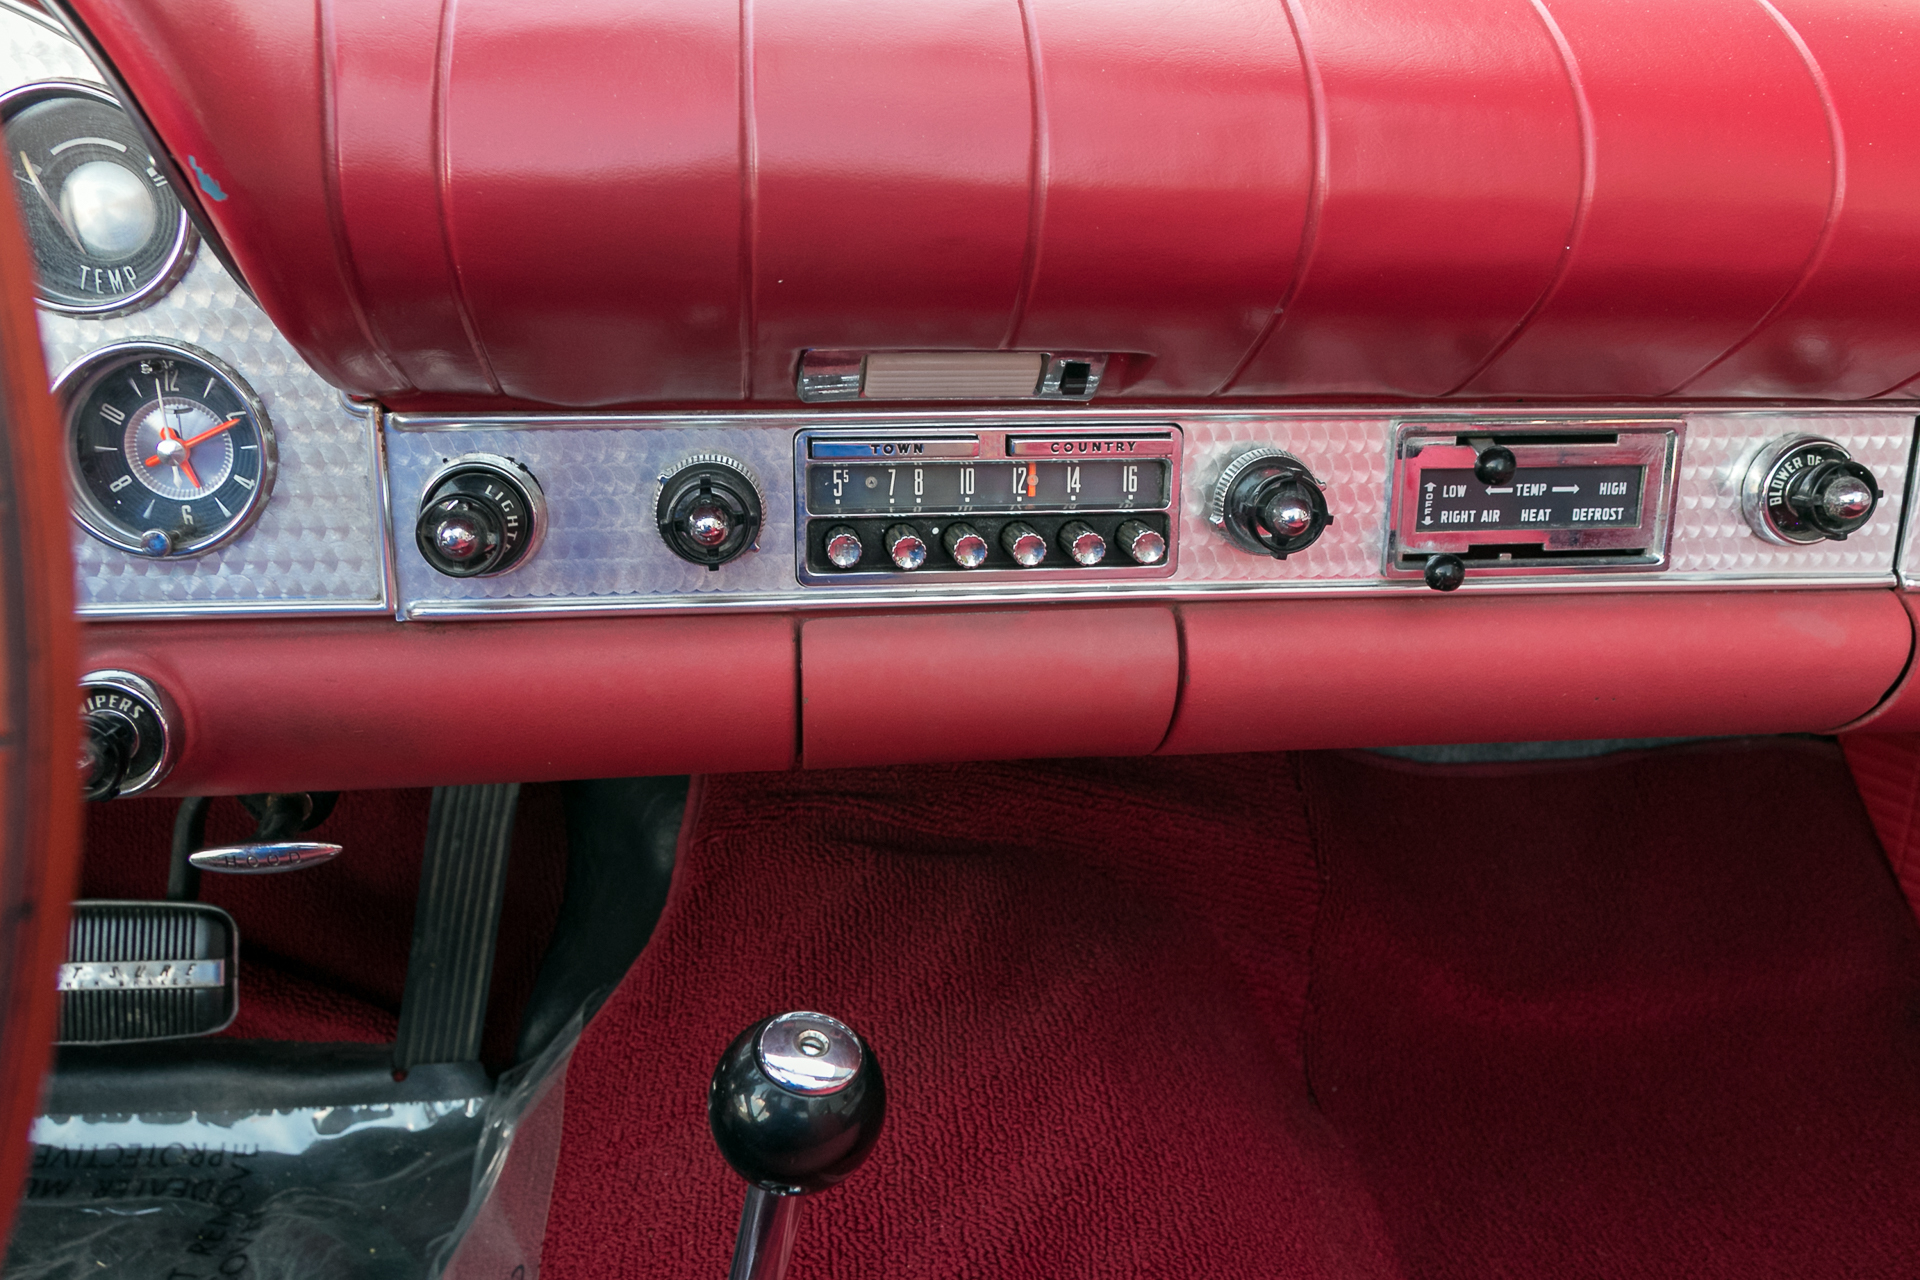 1957 Ford Thunderbird Fast Lane Classic Cars O Matic Automatic Transmission Power Steering Brakes And A